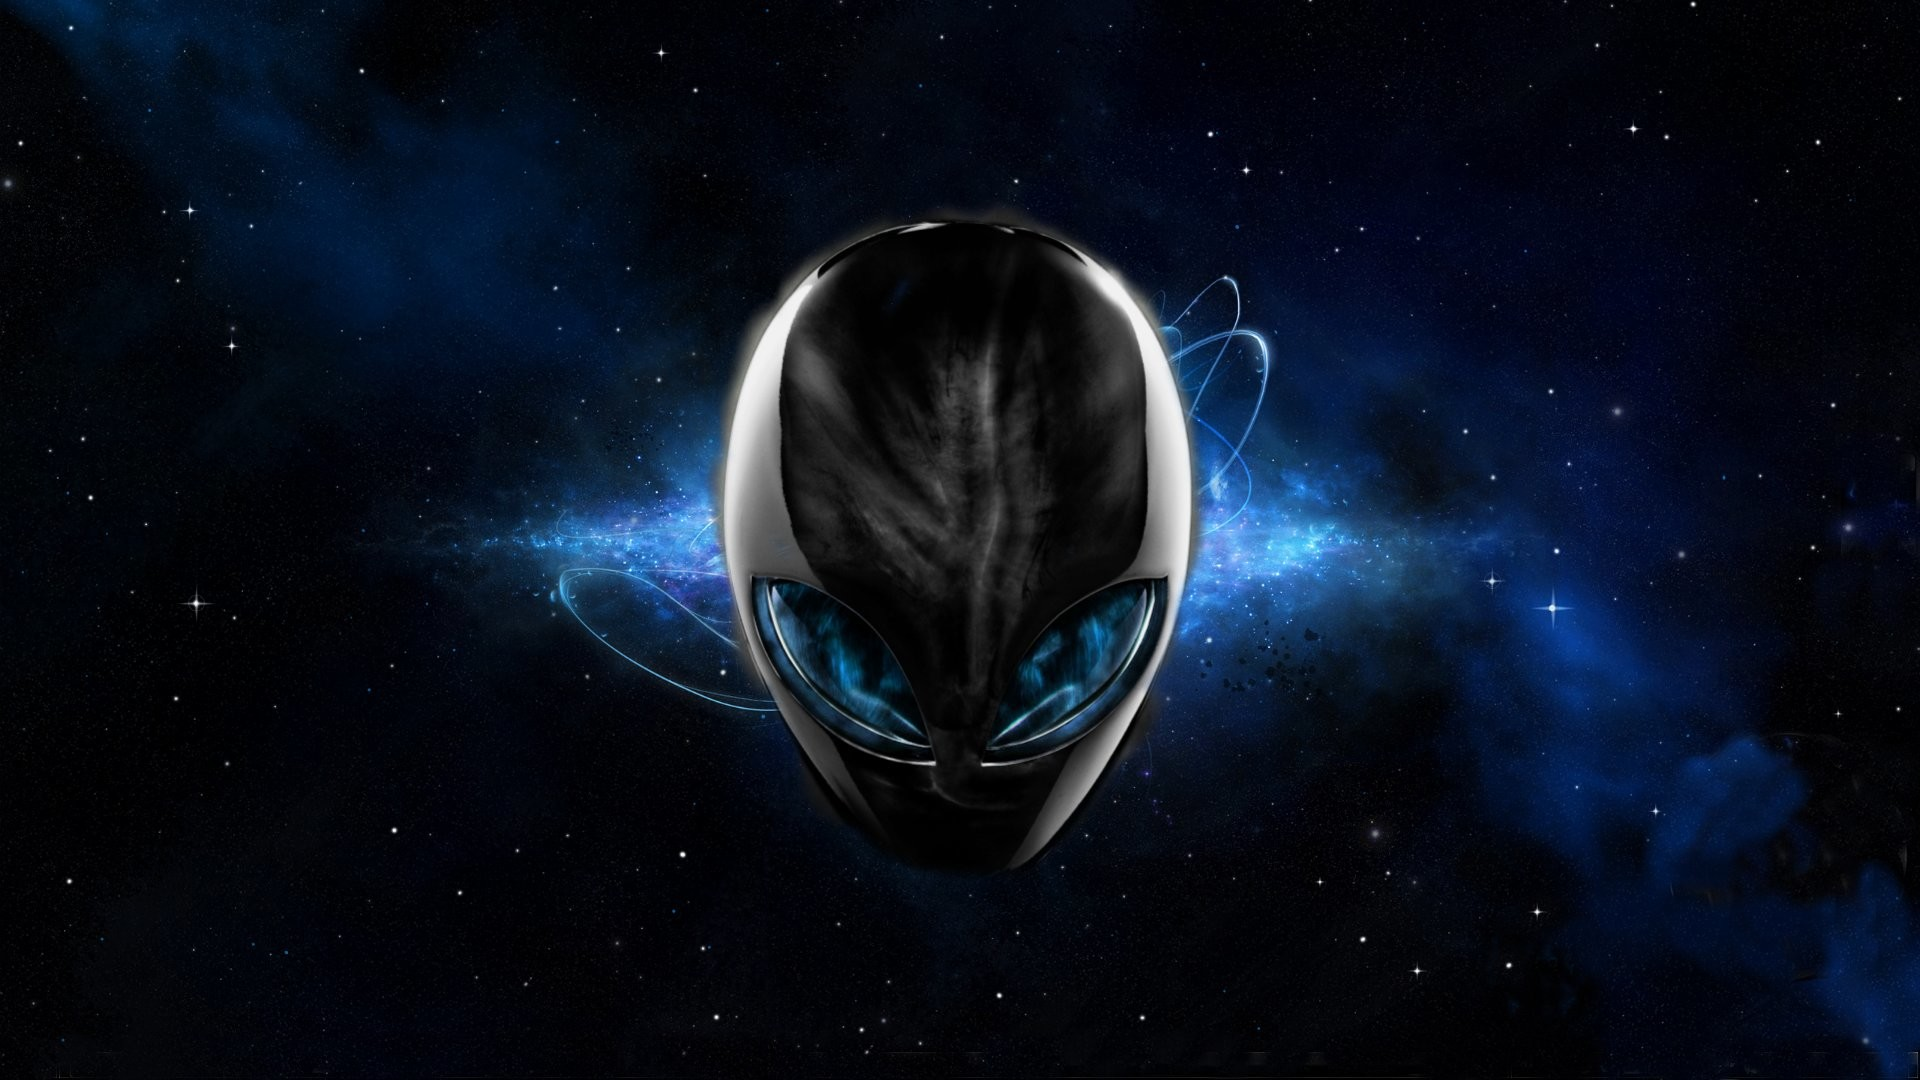 … alienware hd wallpapers pictures images …